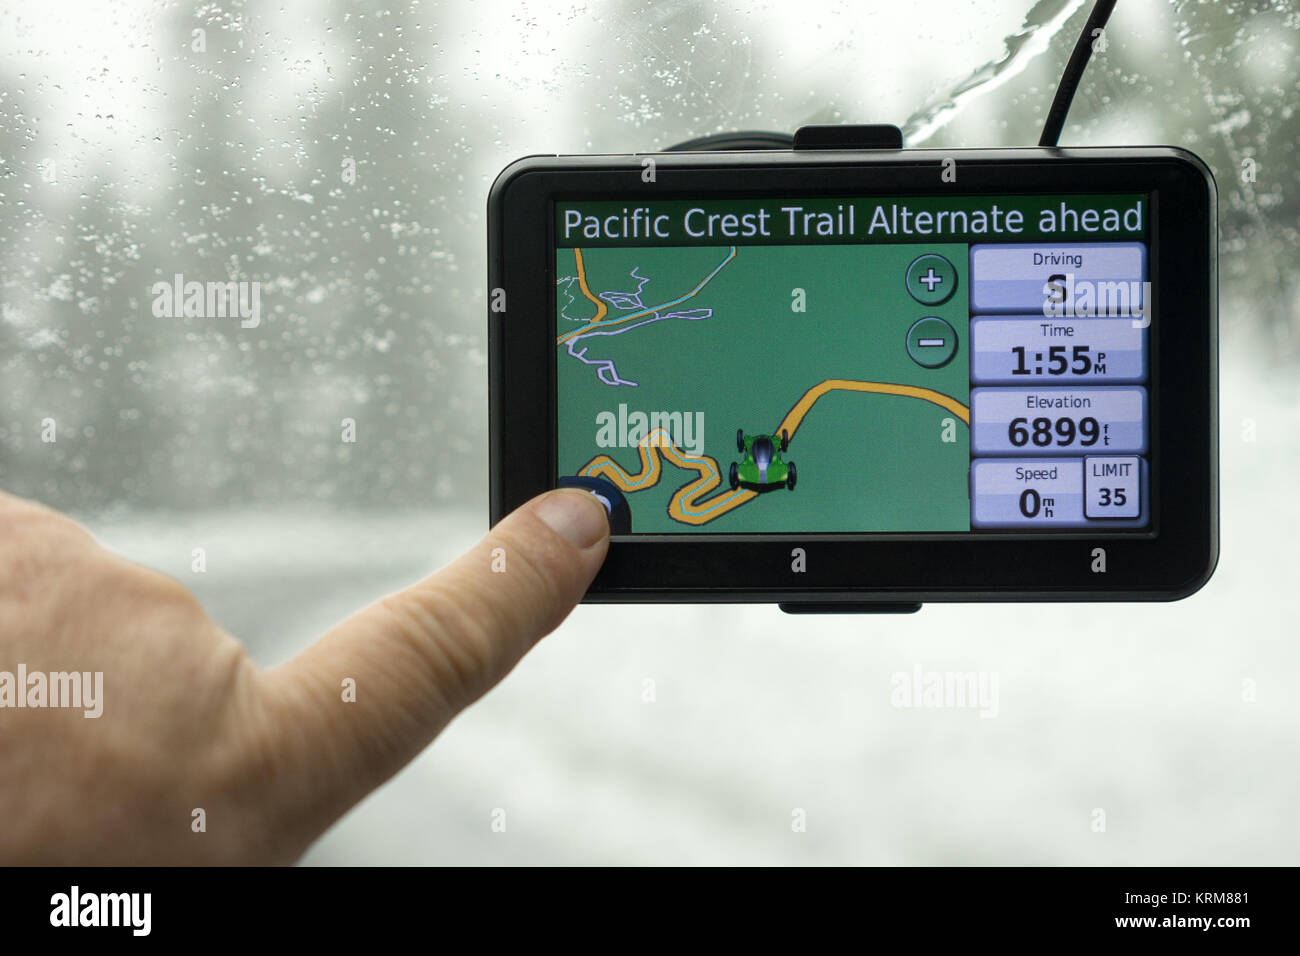 GPS Global Positioning System Car Mapping Device - Stock Image